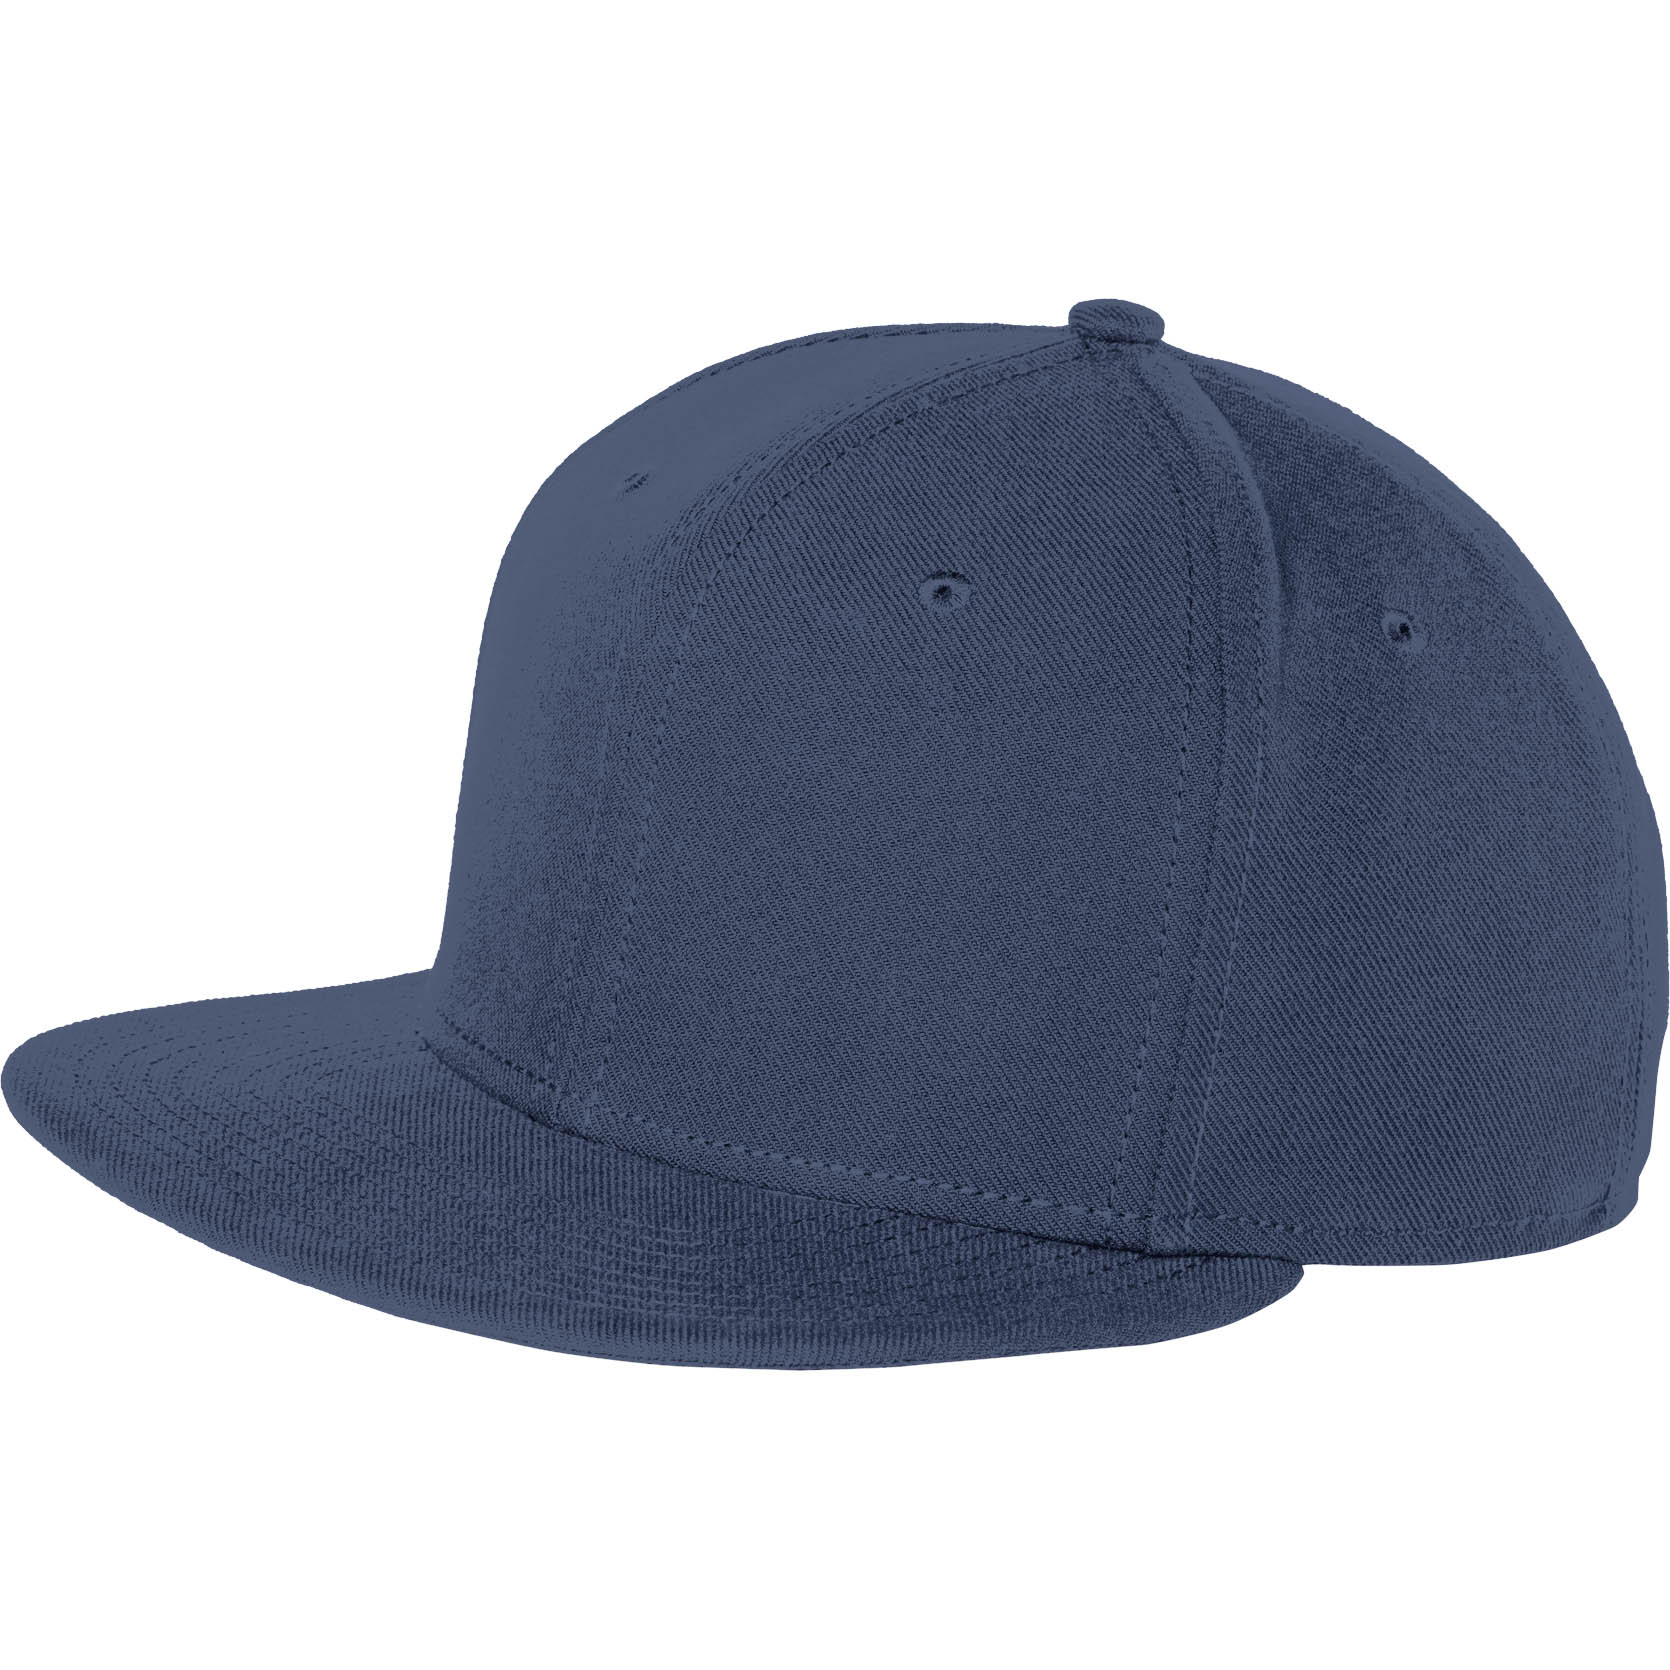 New Era NE402 Original Fit Flat Bill Snapback Cap - League Navy ... 5c4c1c4f5452